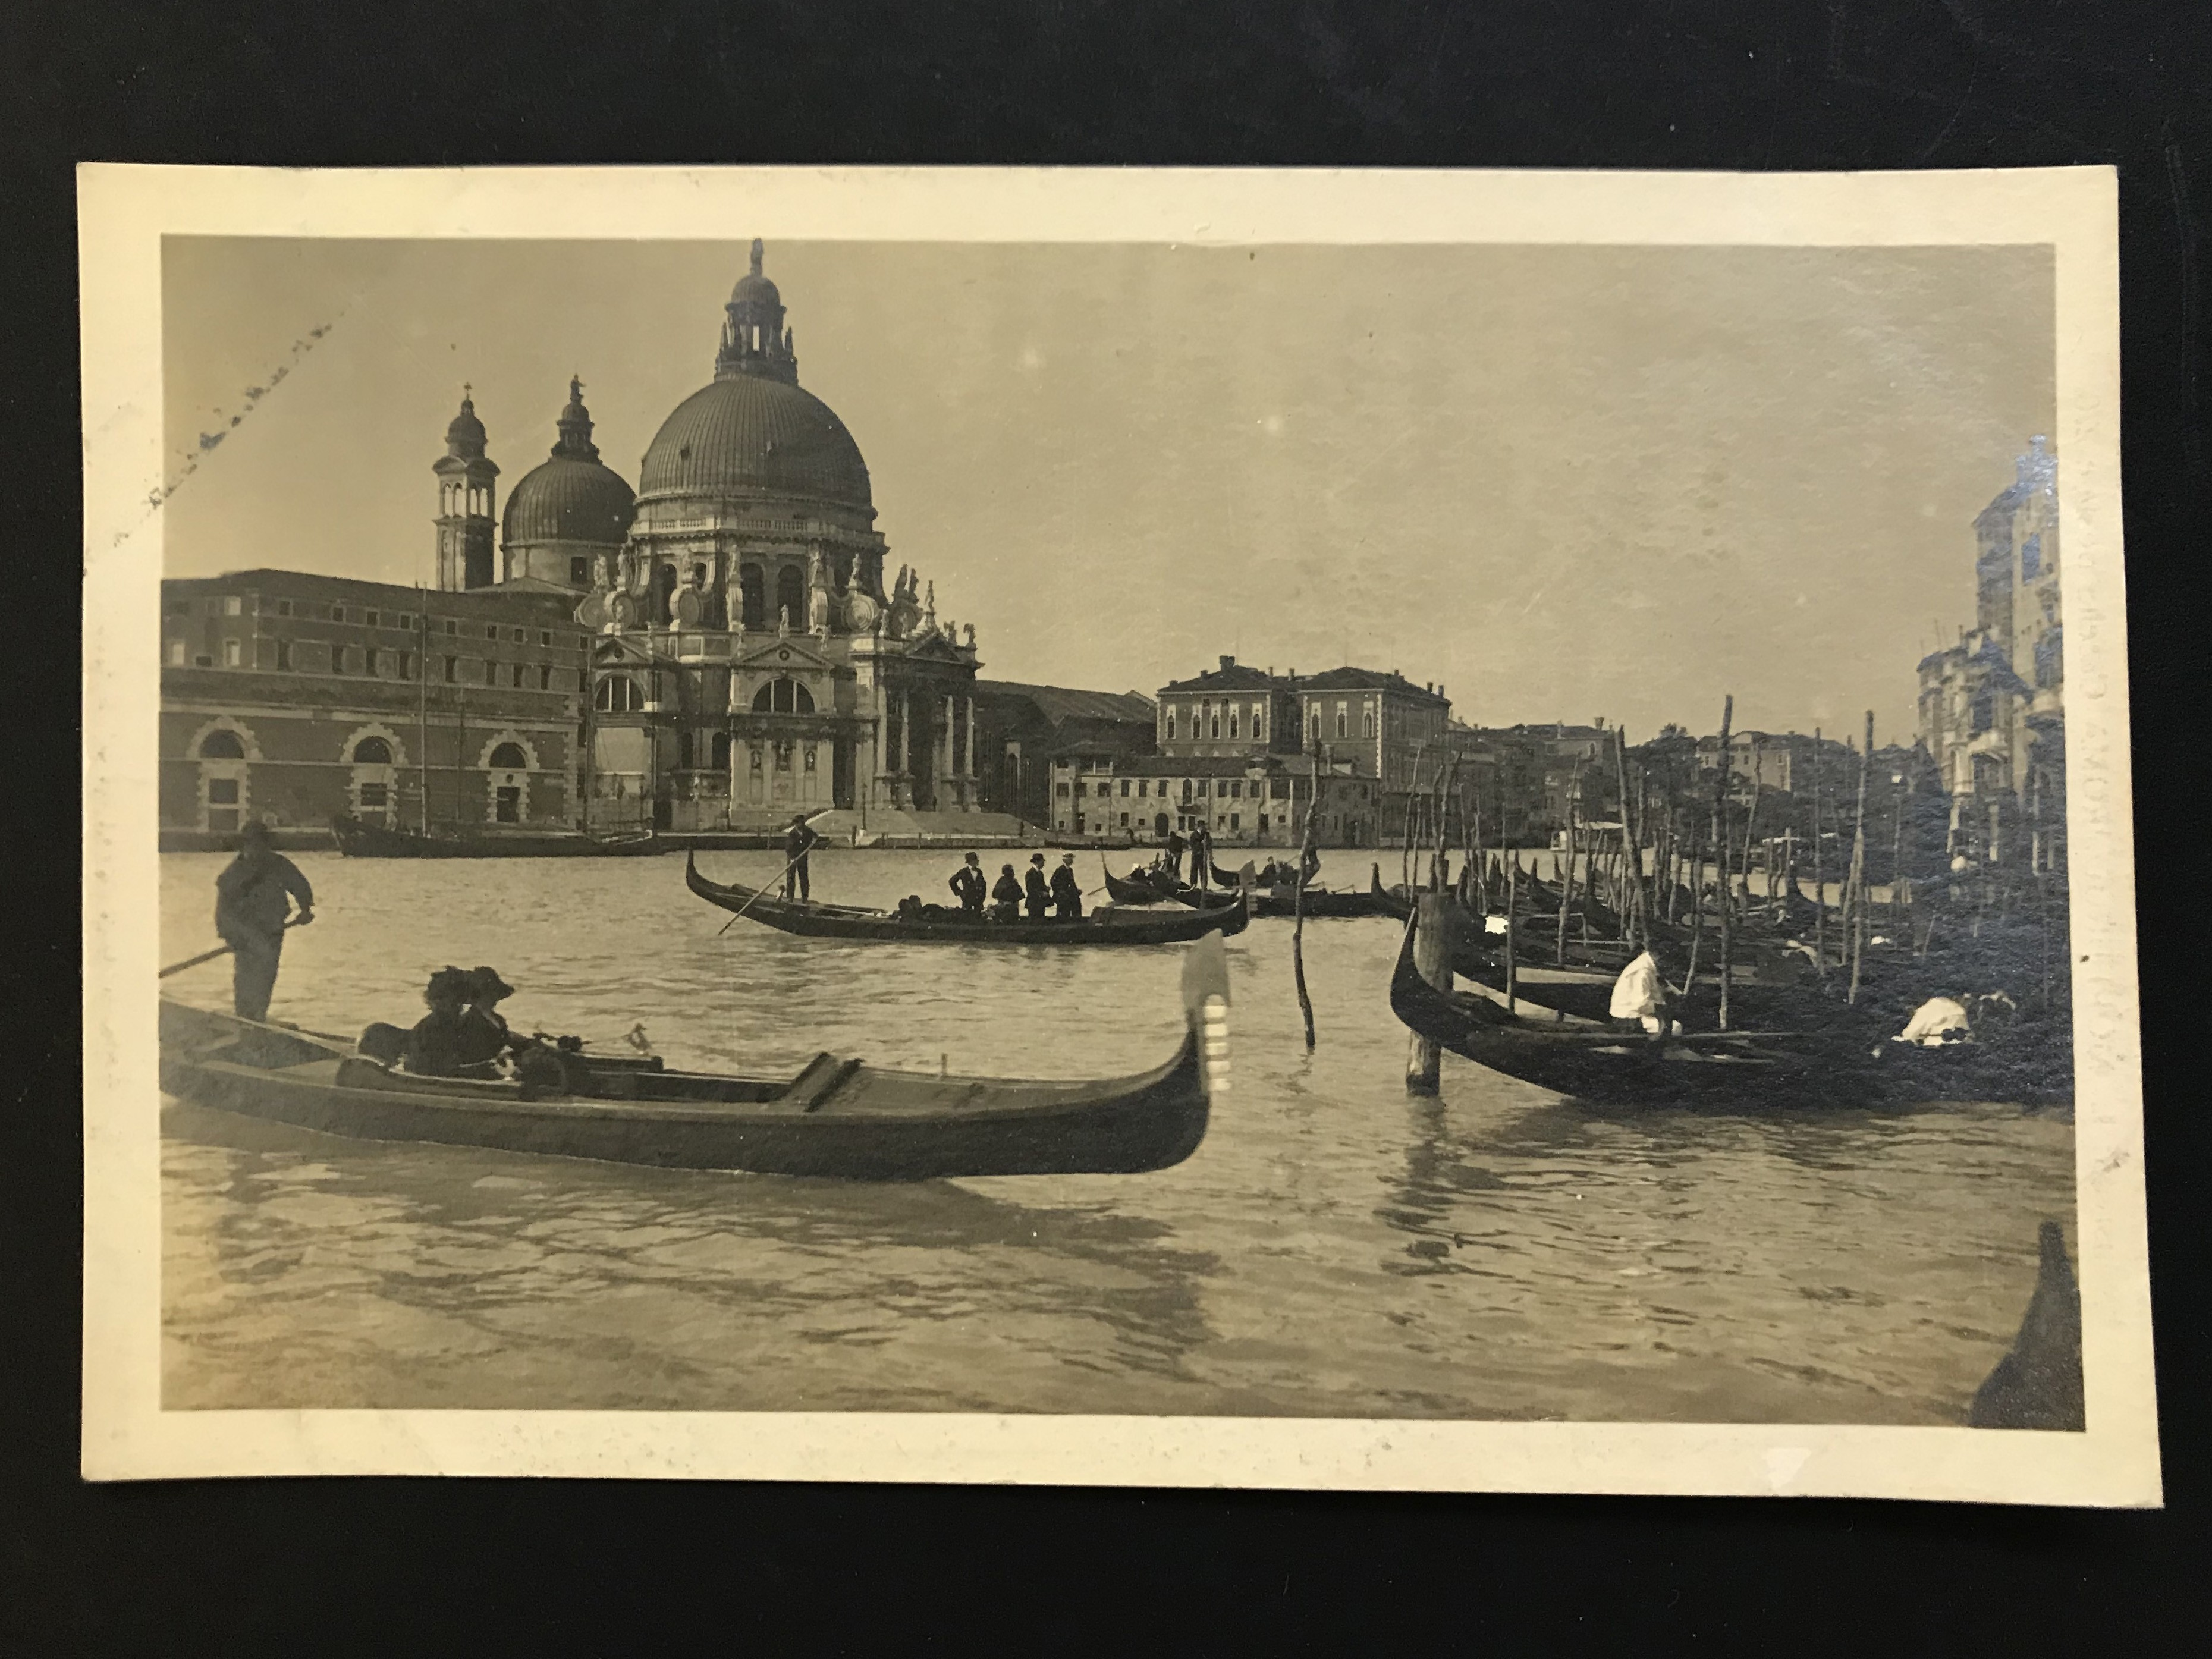 SELECTION OF VENICE RELATED POSTCARDS - Image 47 of 53